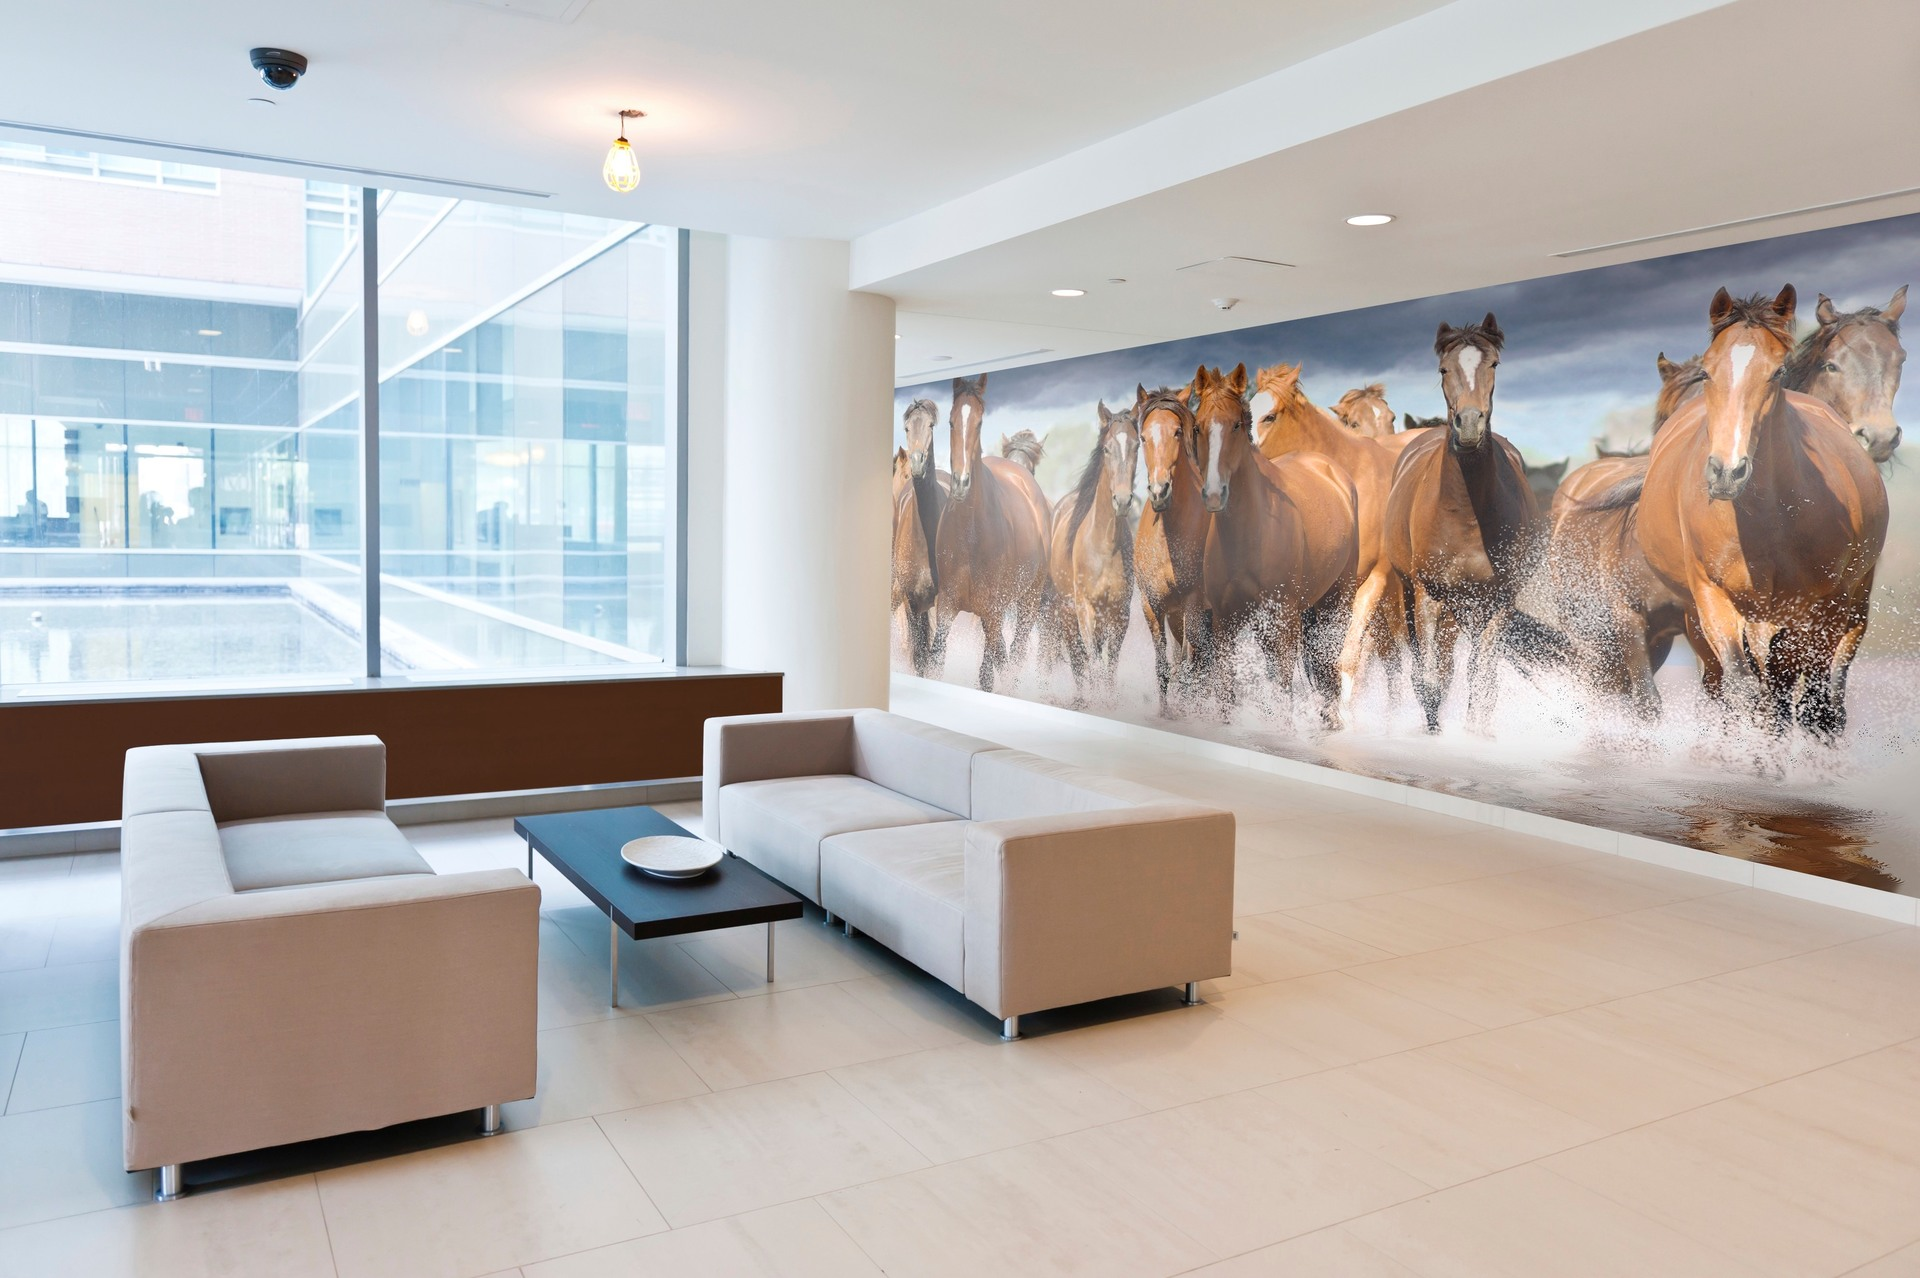 The Horses' Reflection wall mural by Murals Your Way is the perfect touch to this long hotel lobby wall.